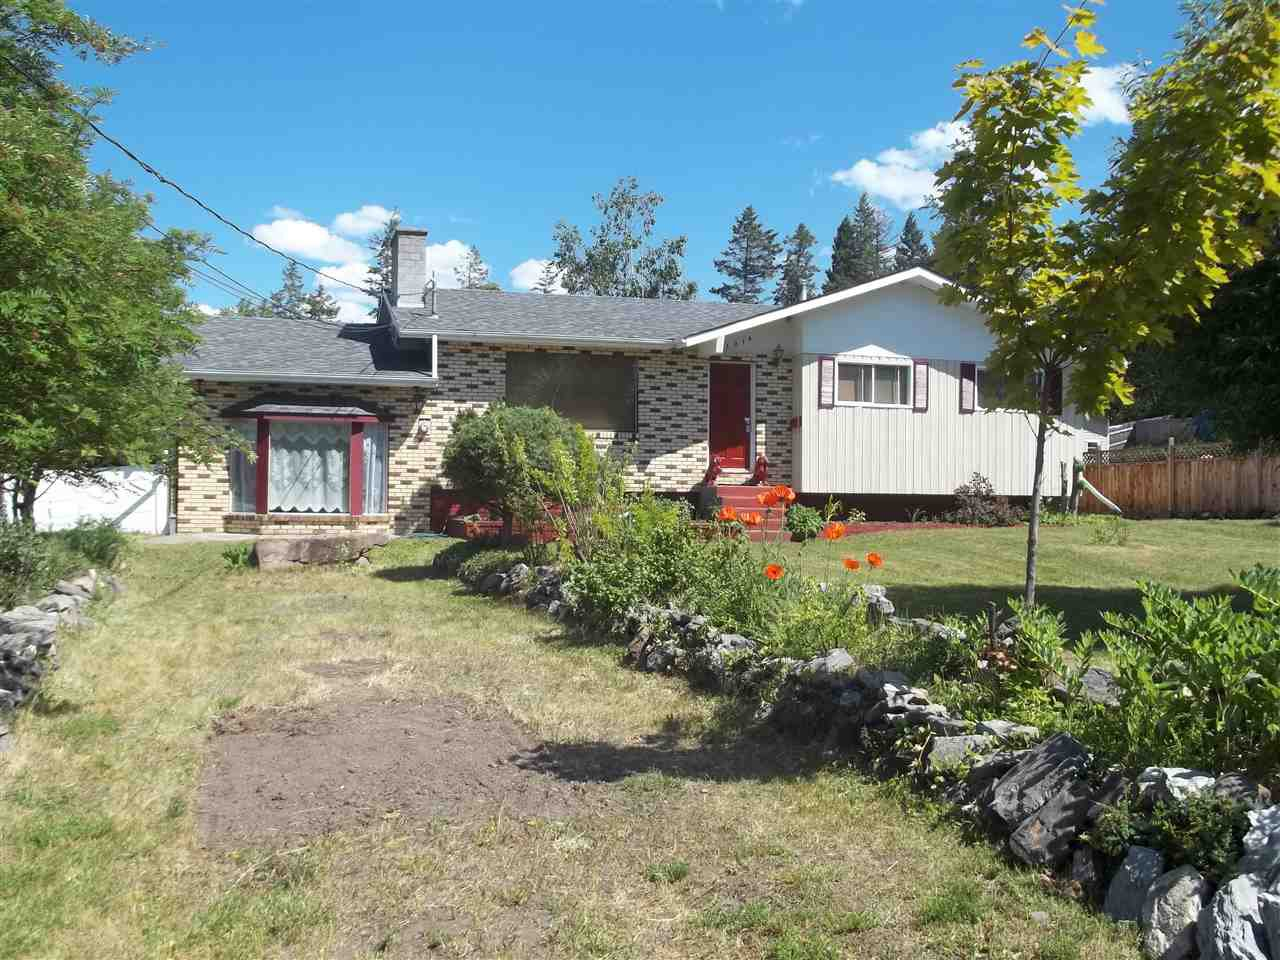 Main Photo: 1016 OPAL Street in Williams Lake: Esler/Dog Creek House for sale (Williams Lake (Zone 27))  : MLS®# R2360279